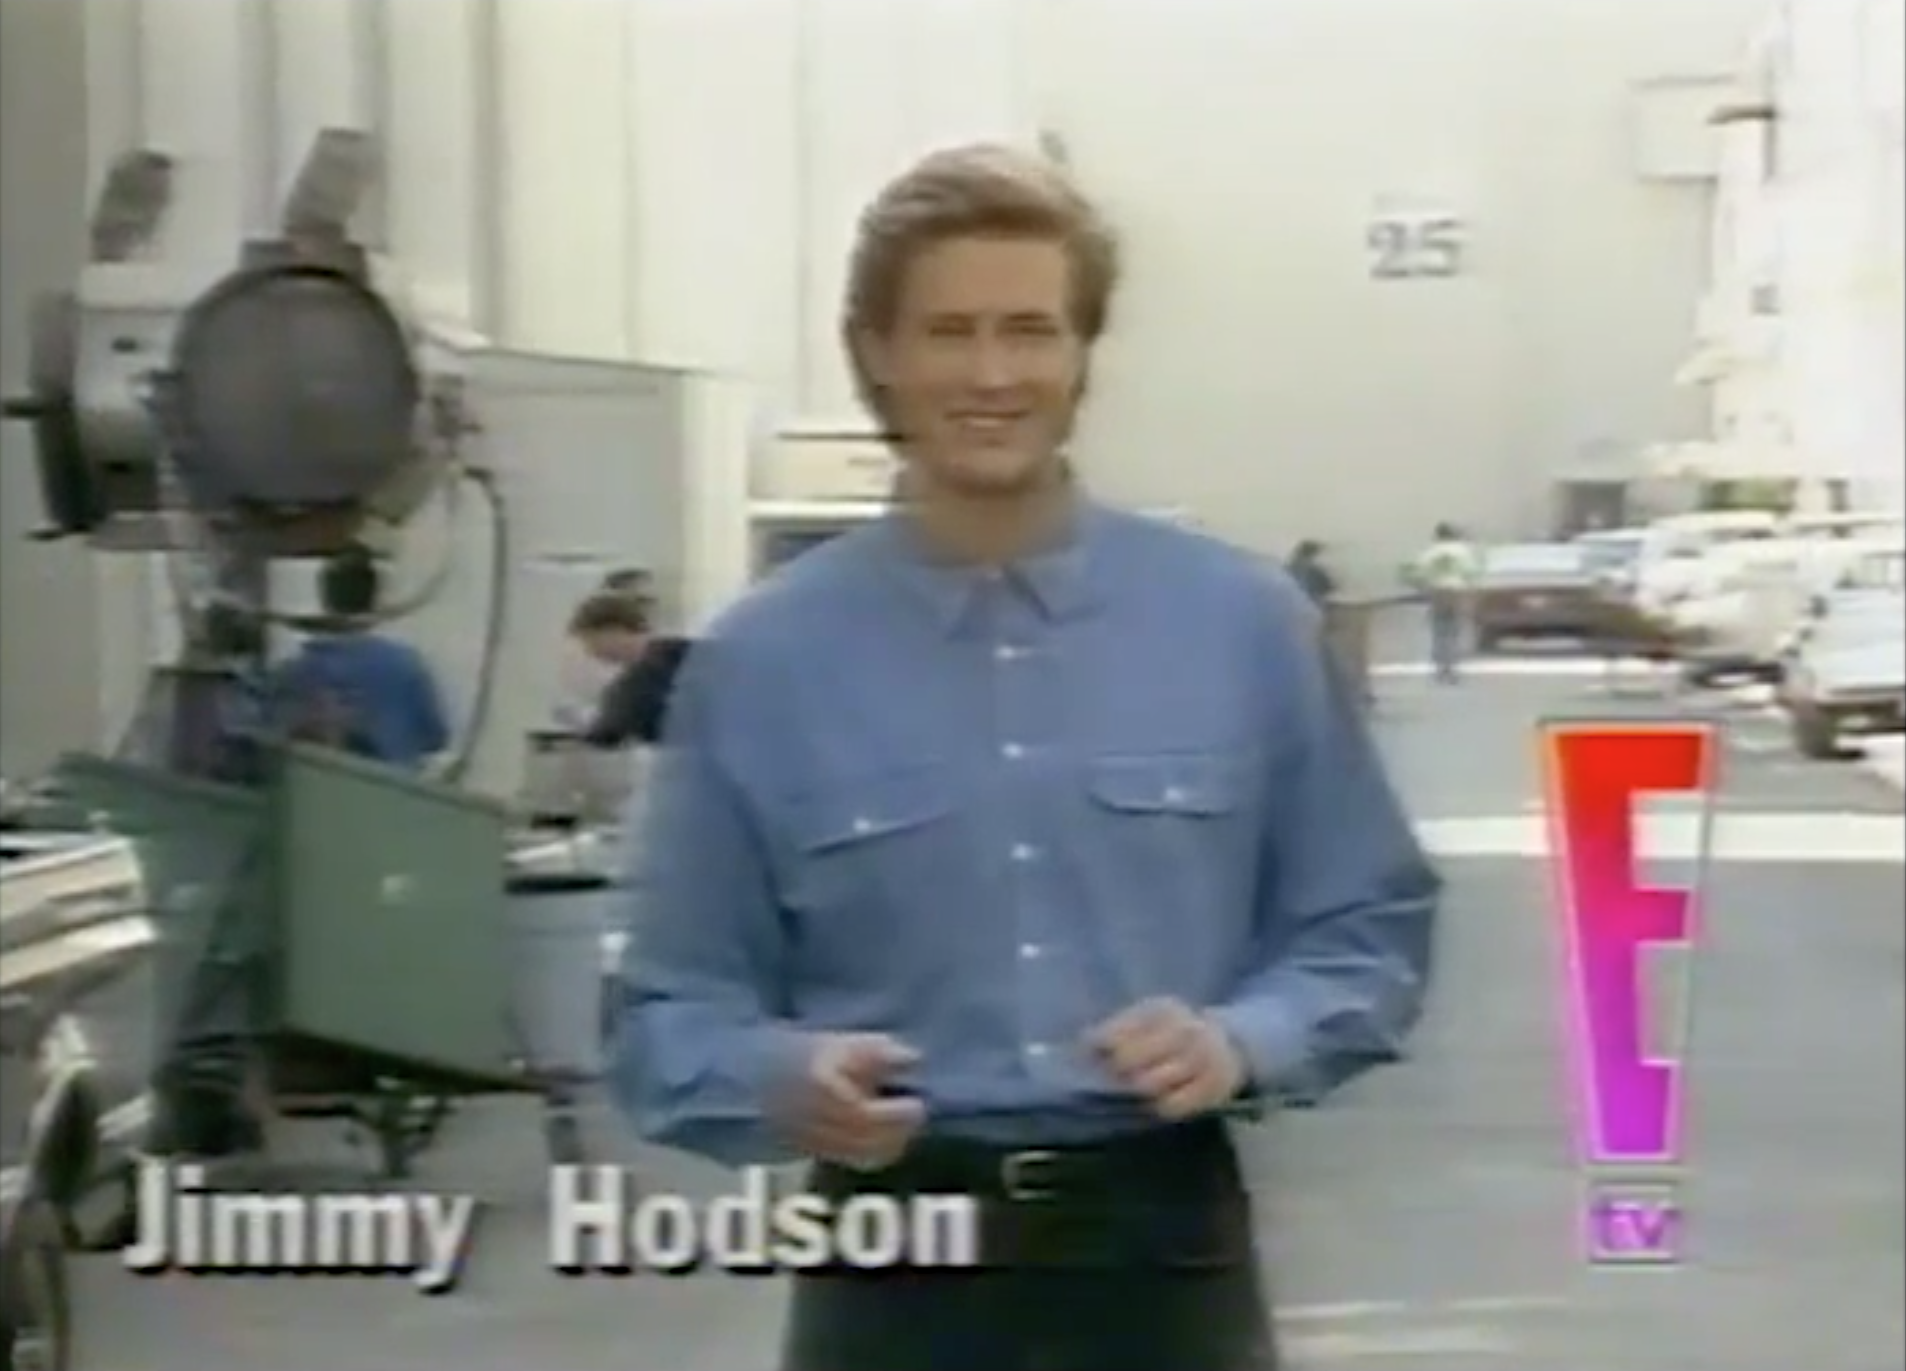 E! Entertainment Television produced a pilot for a half-hour syndicated show with Willow Bay as host and Jim as the backlot studio reporter in 1995.